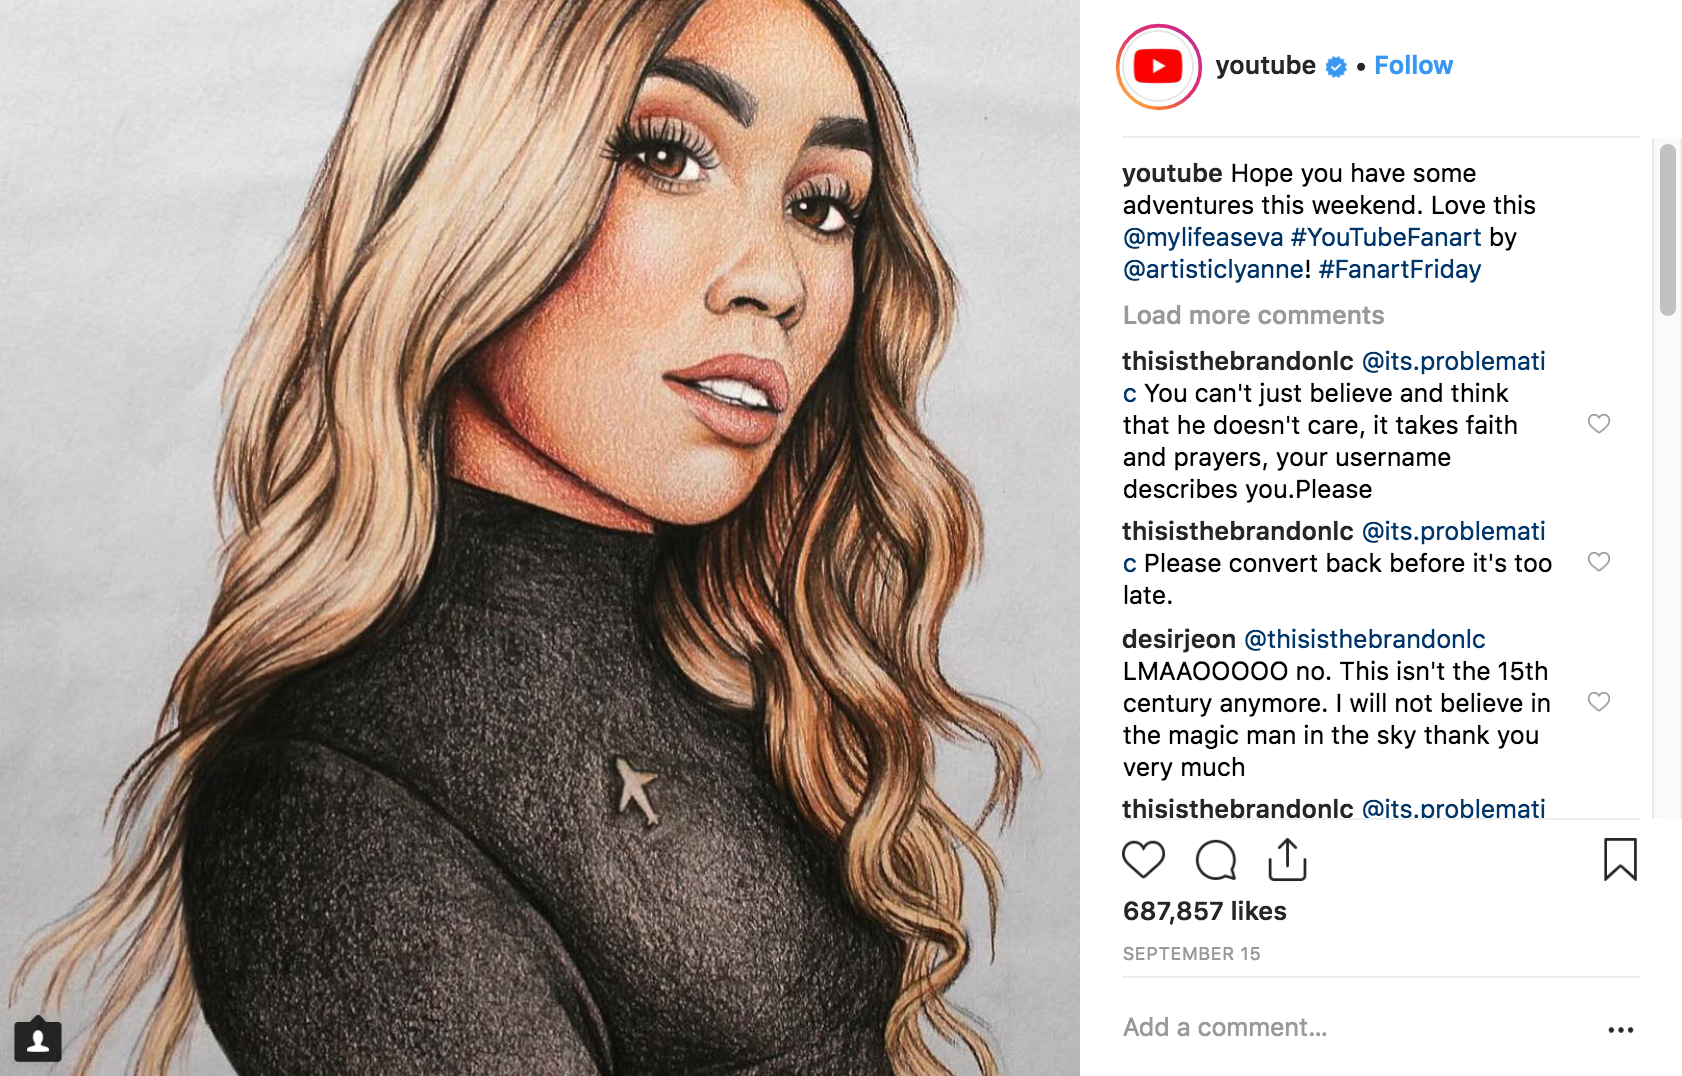 Best Instagram Campaigns 2018 - YouTube - Sked Social